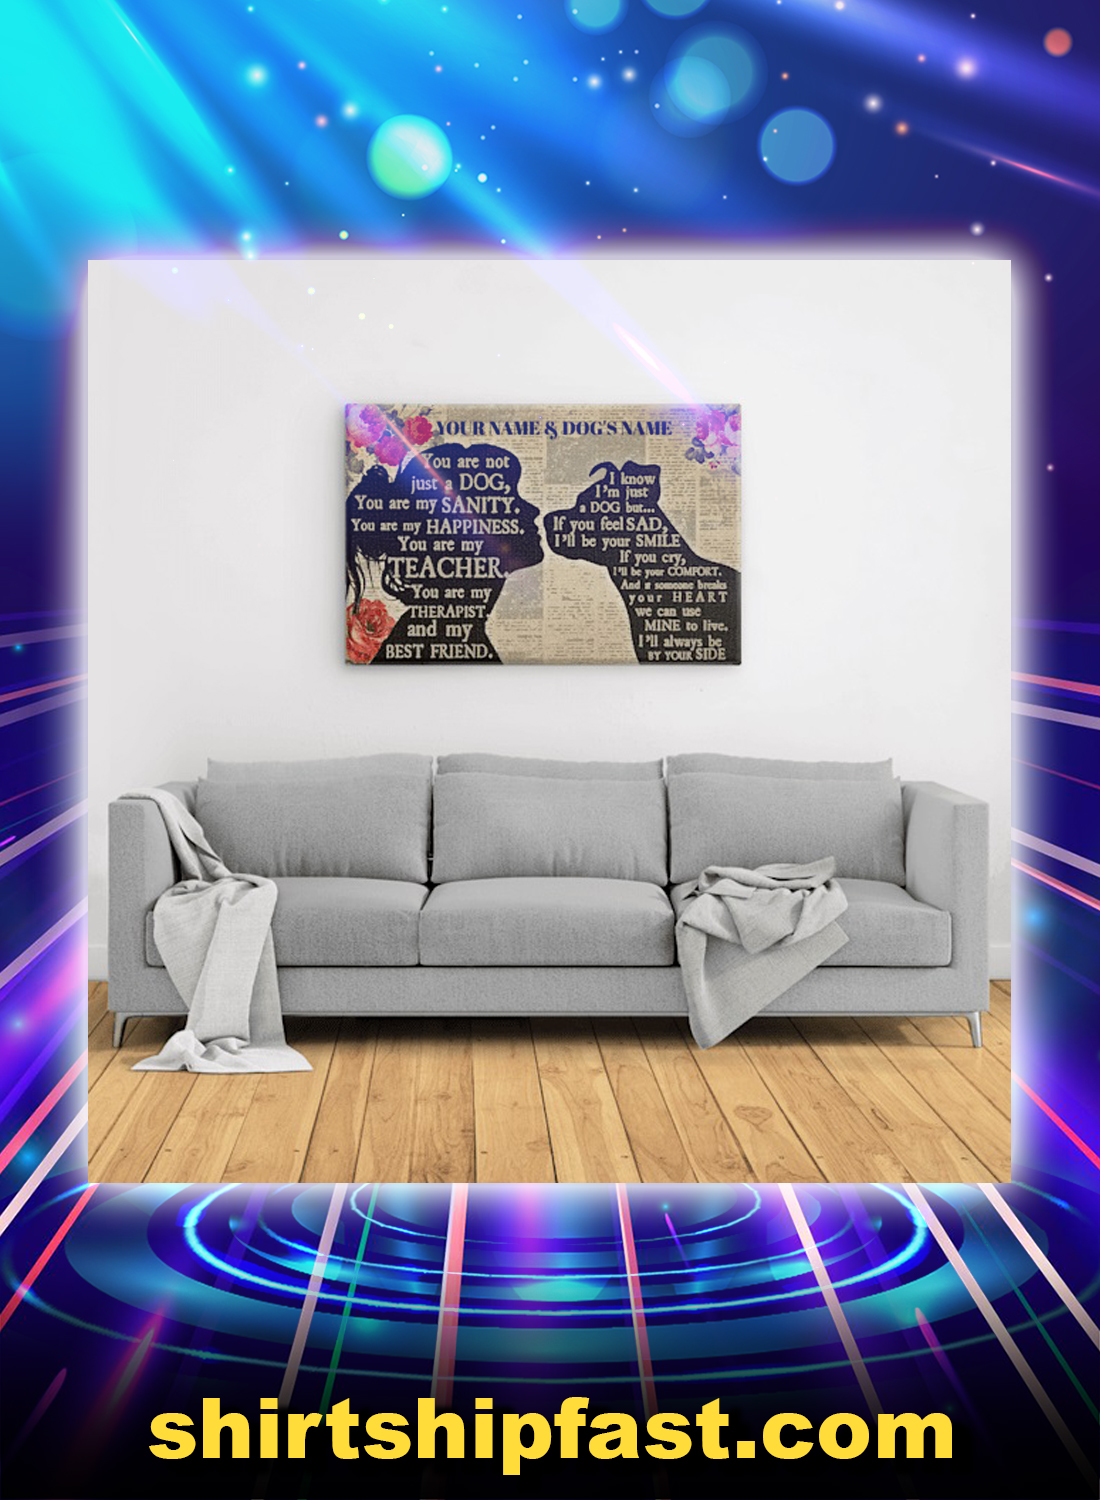 Personalized custom name Pitbull girl therapist best friend canvas prints - Picture 1